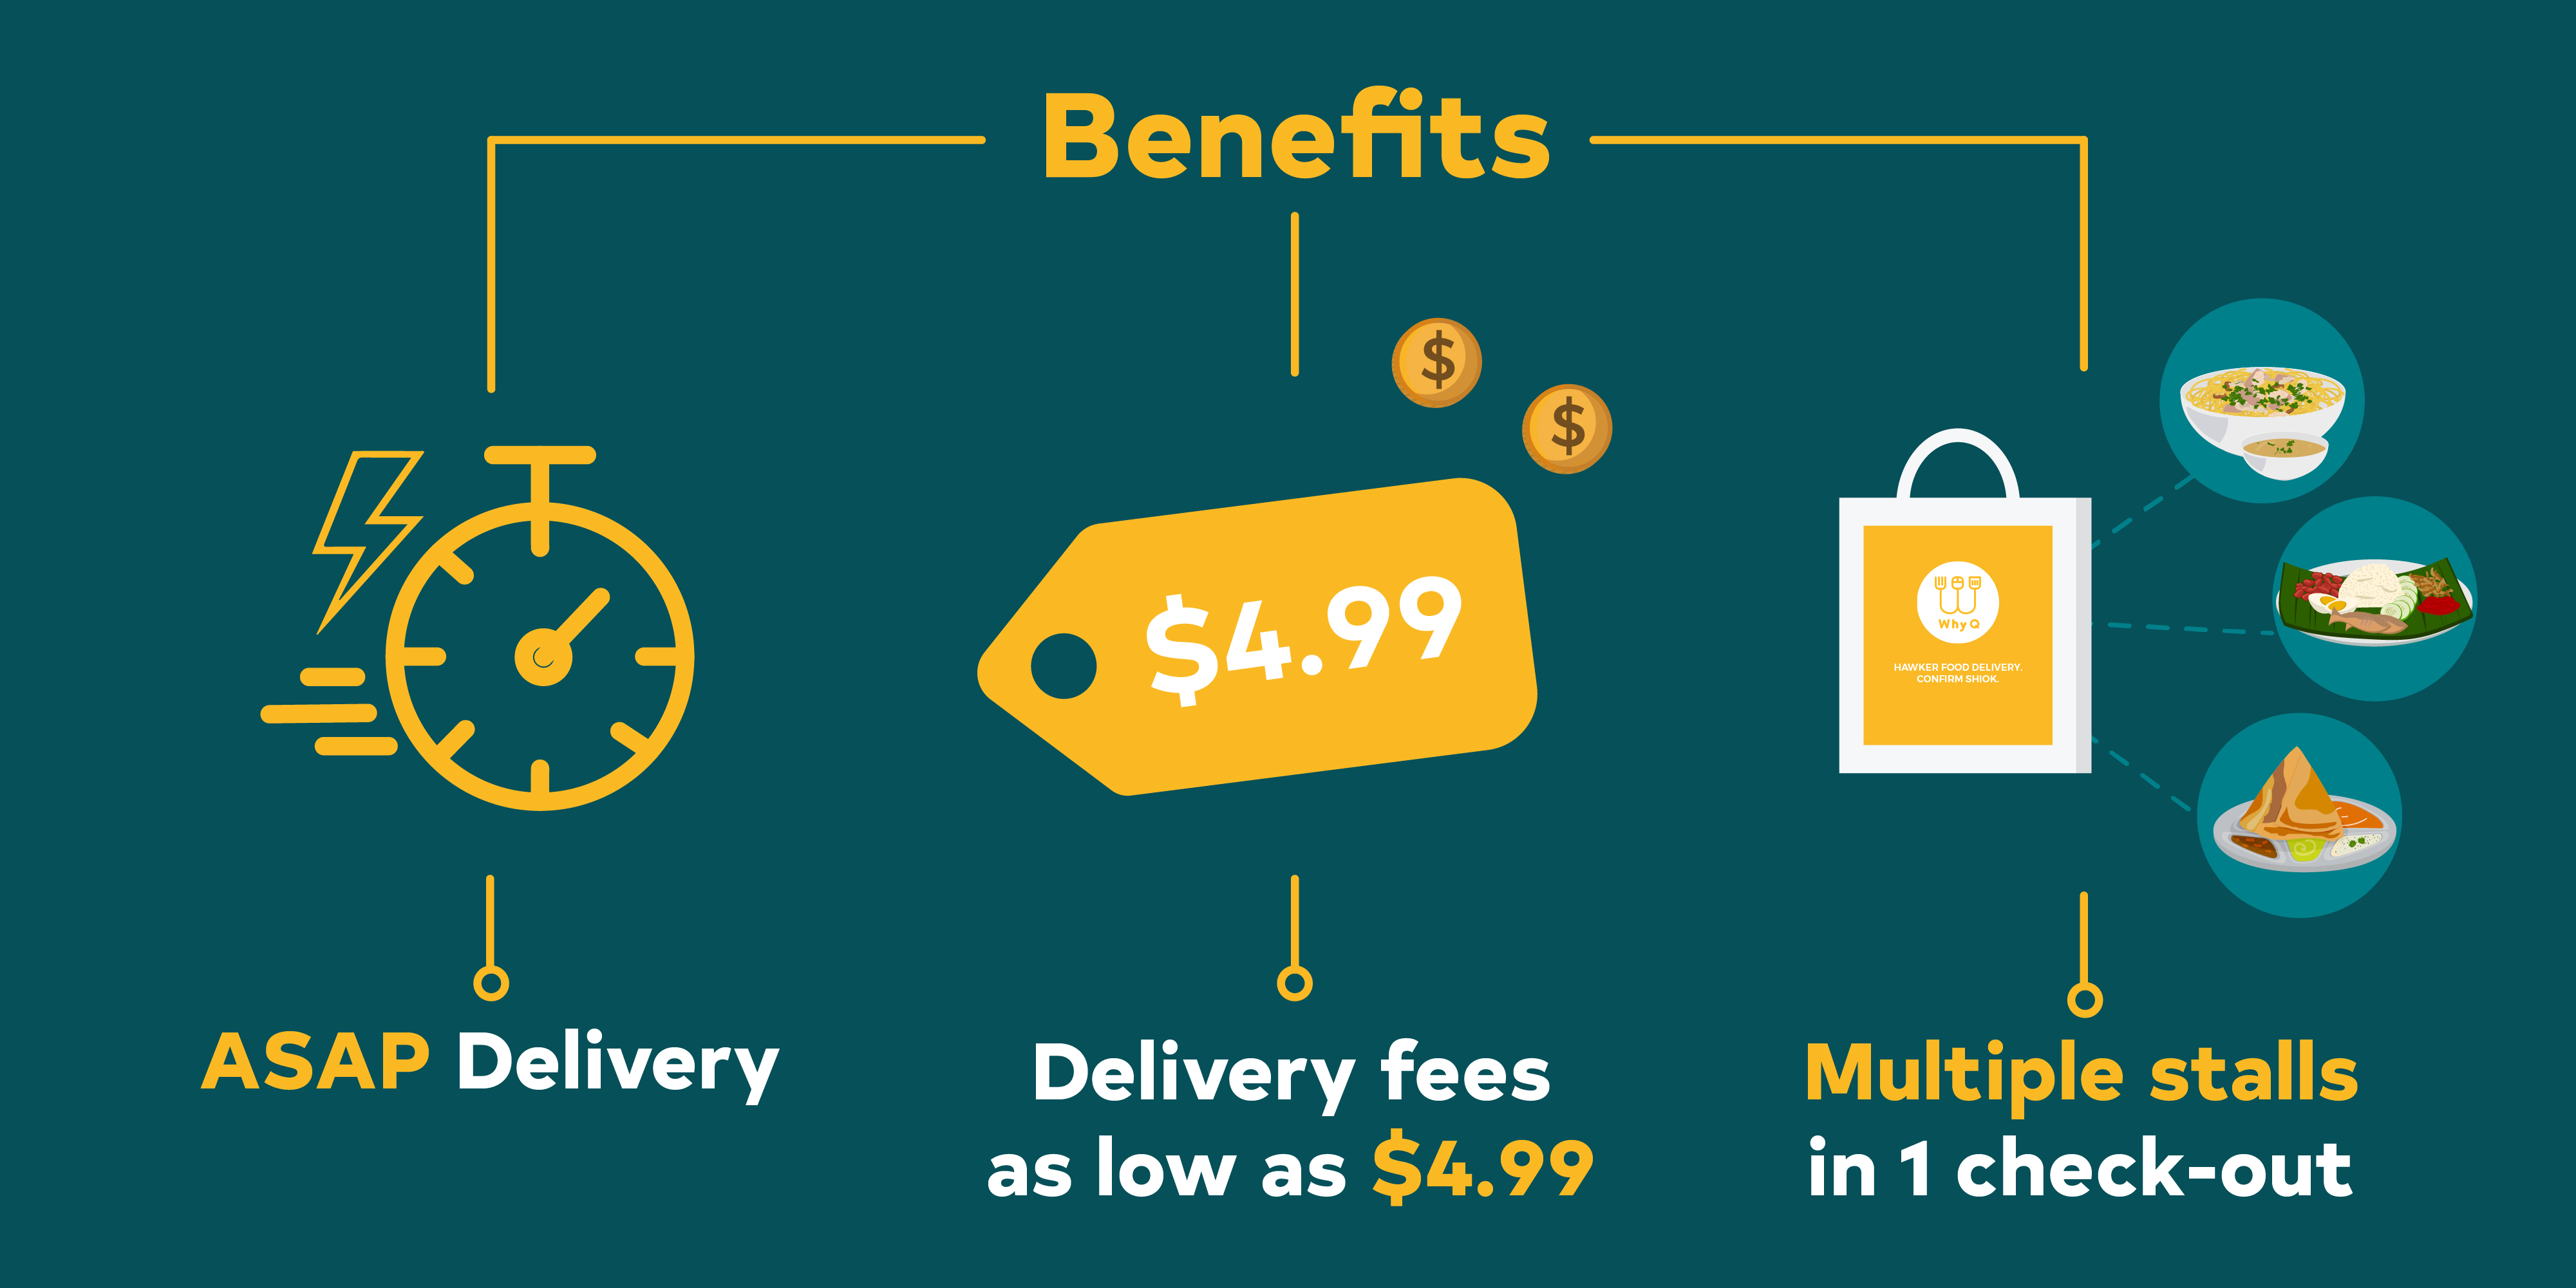 WhyQ on-demand benefits, ASAP delivery at a flat delivery fee, and multiple stalls in a single check-out.